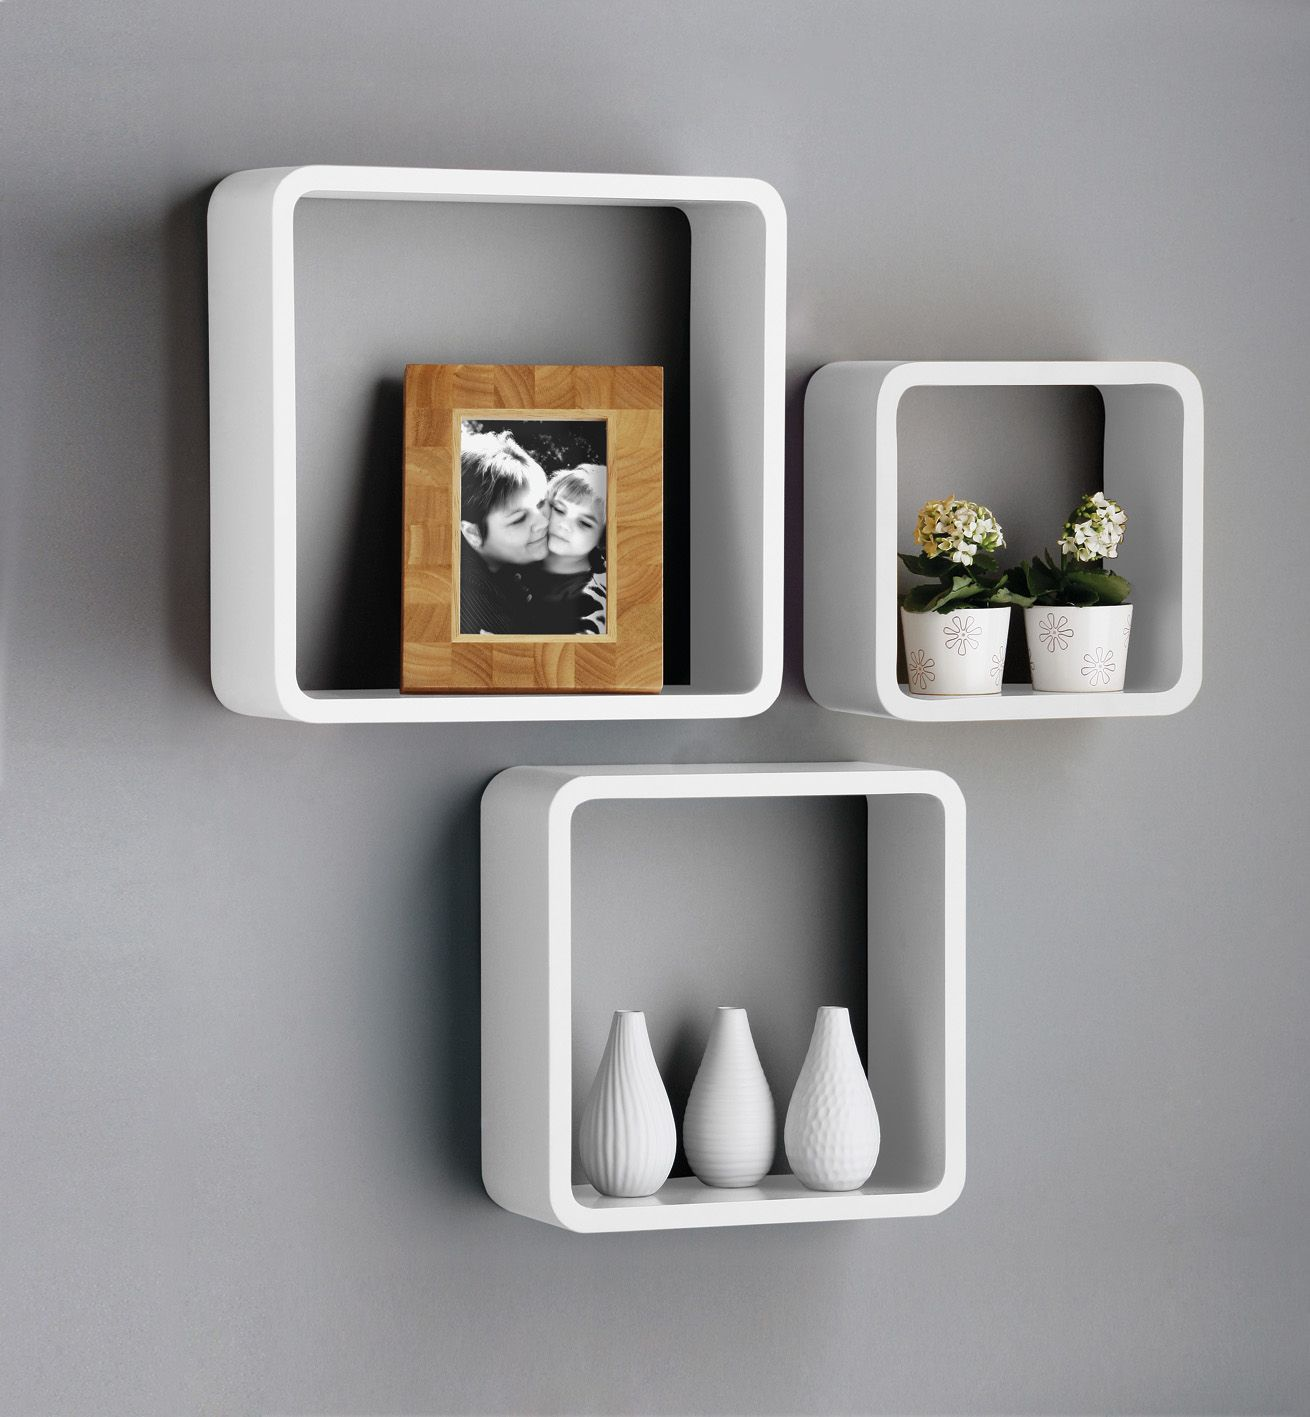 details about new set white black square floating cube wall oak box shelves storage shelf cubes foldable desk hidden cable mount iron tall freestanding antique looking brackets